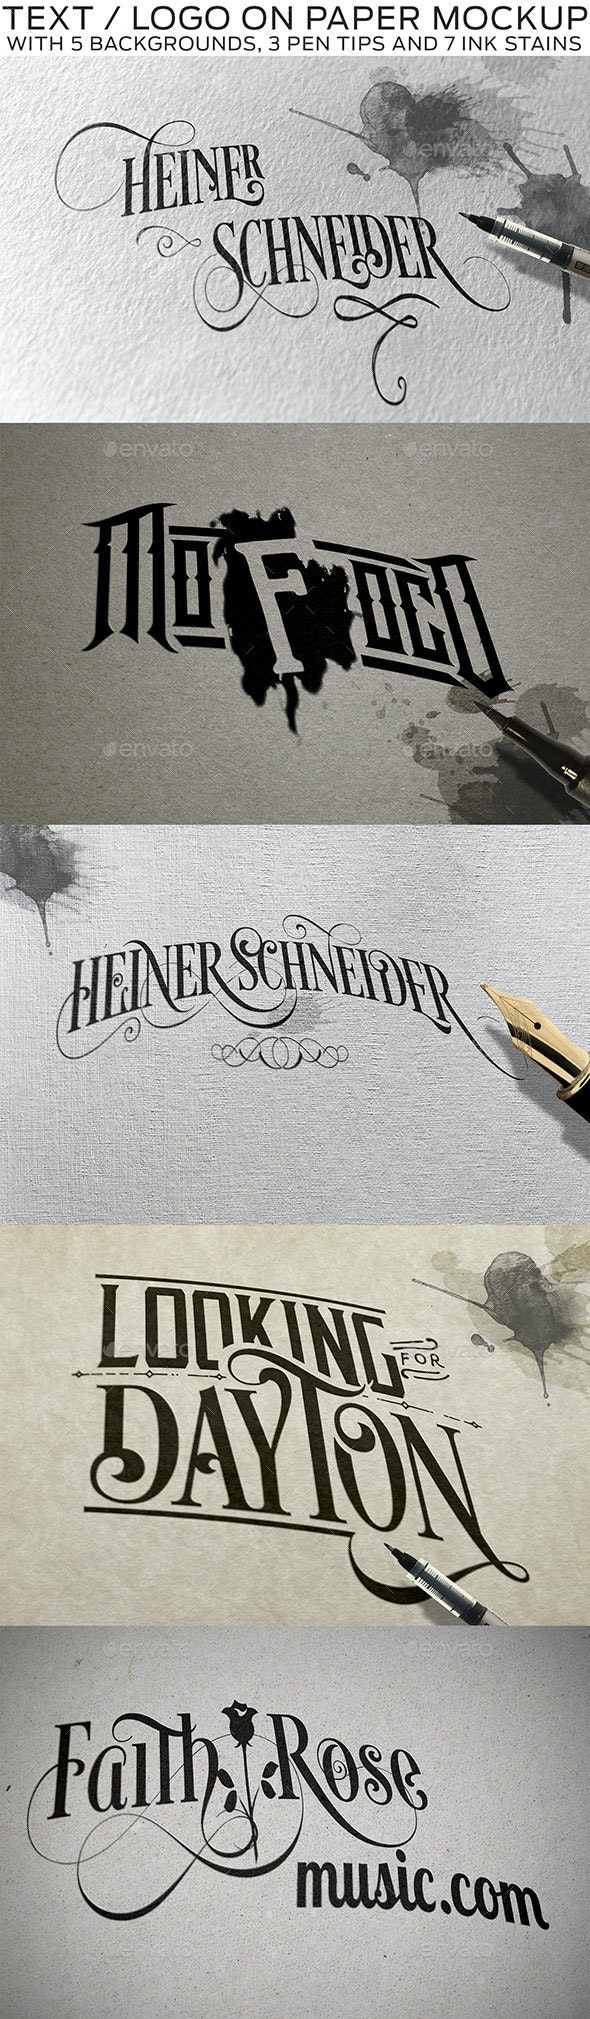 Text or Logo on Paper with Pen and Stains Mockup - Miscellaneous Print